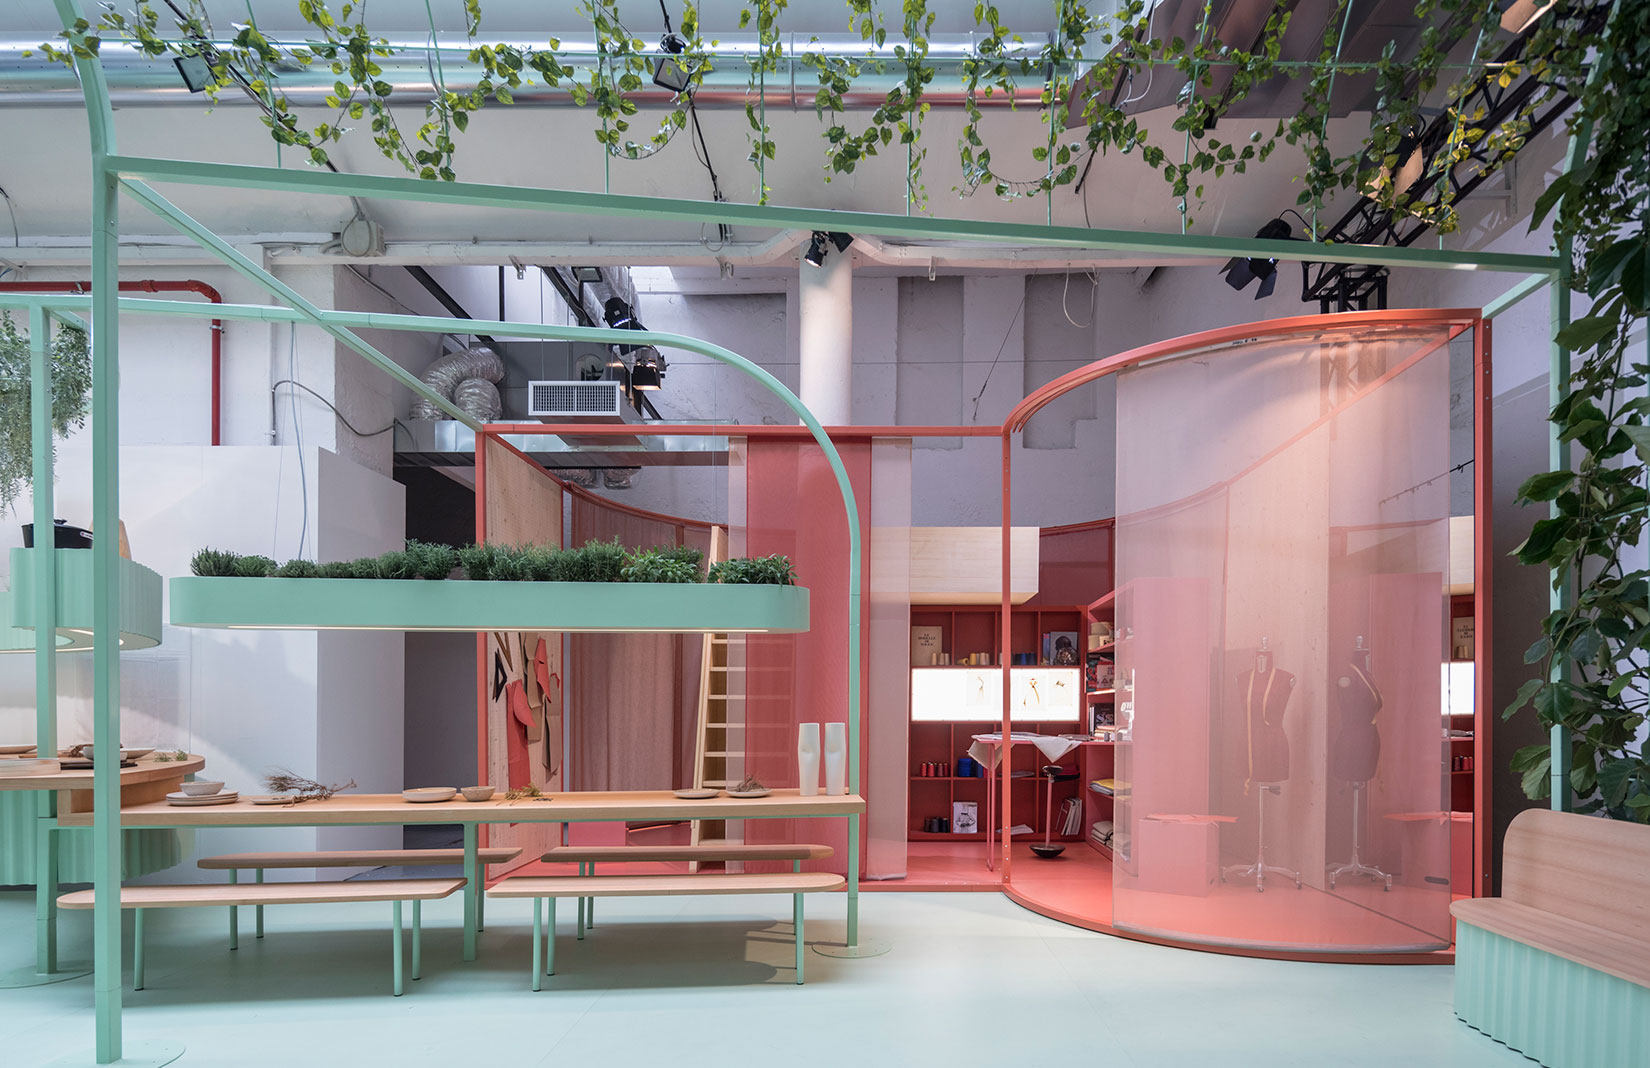 Studiomama's MINI Living - Built By All installation at Milan Design Week